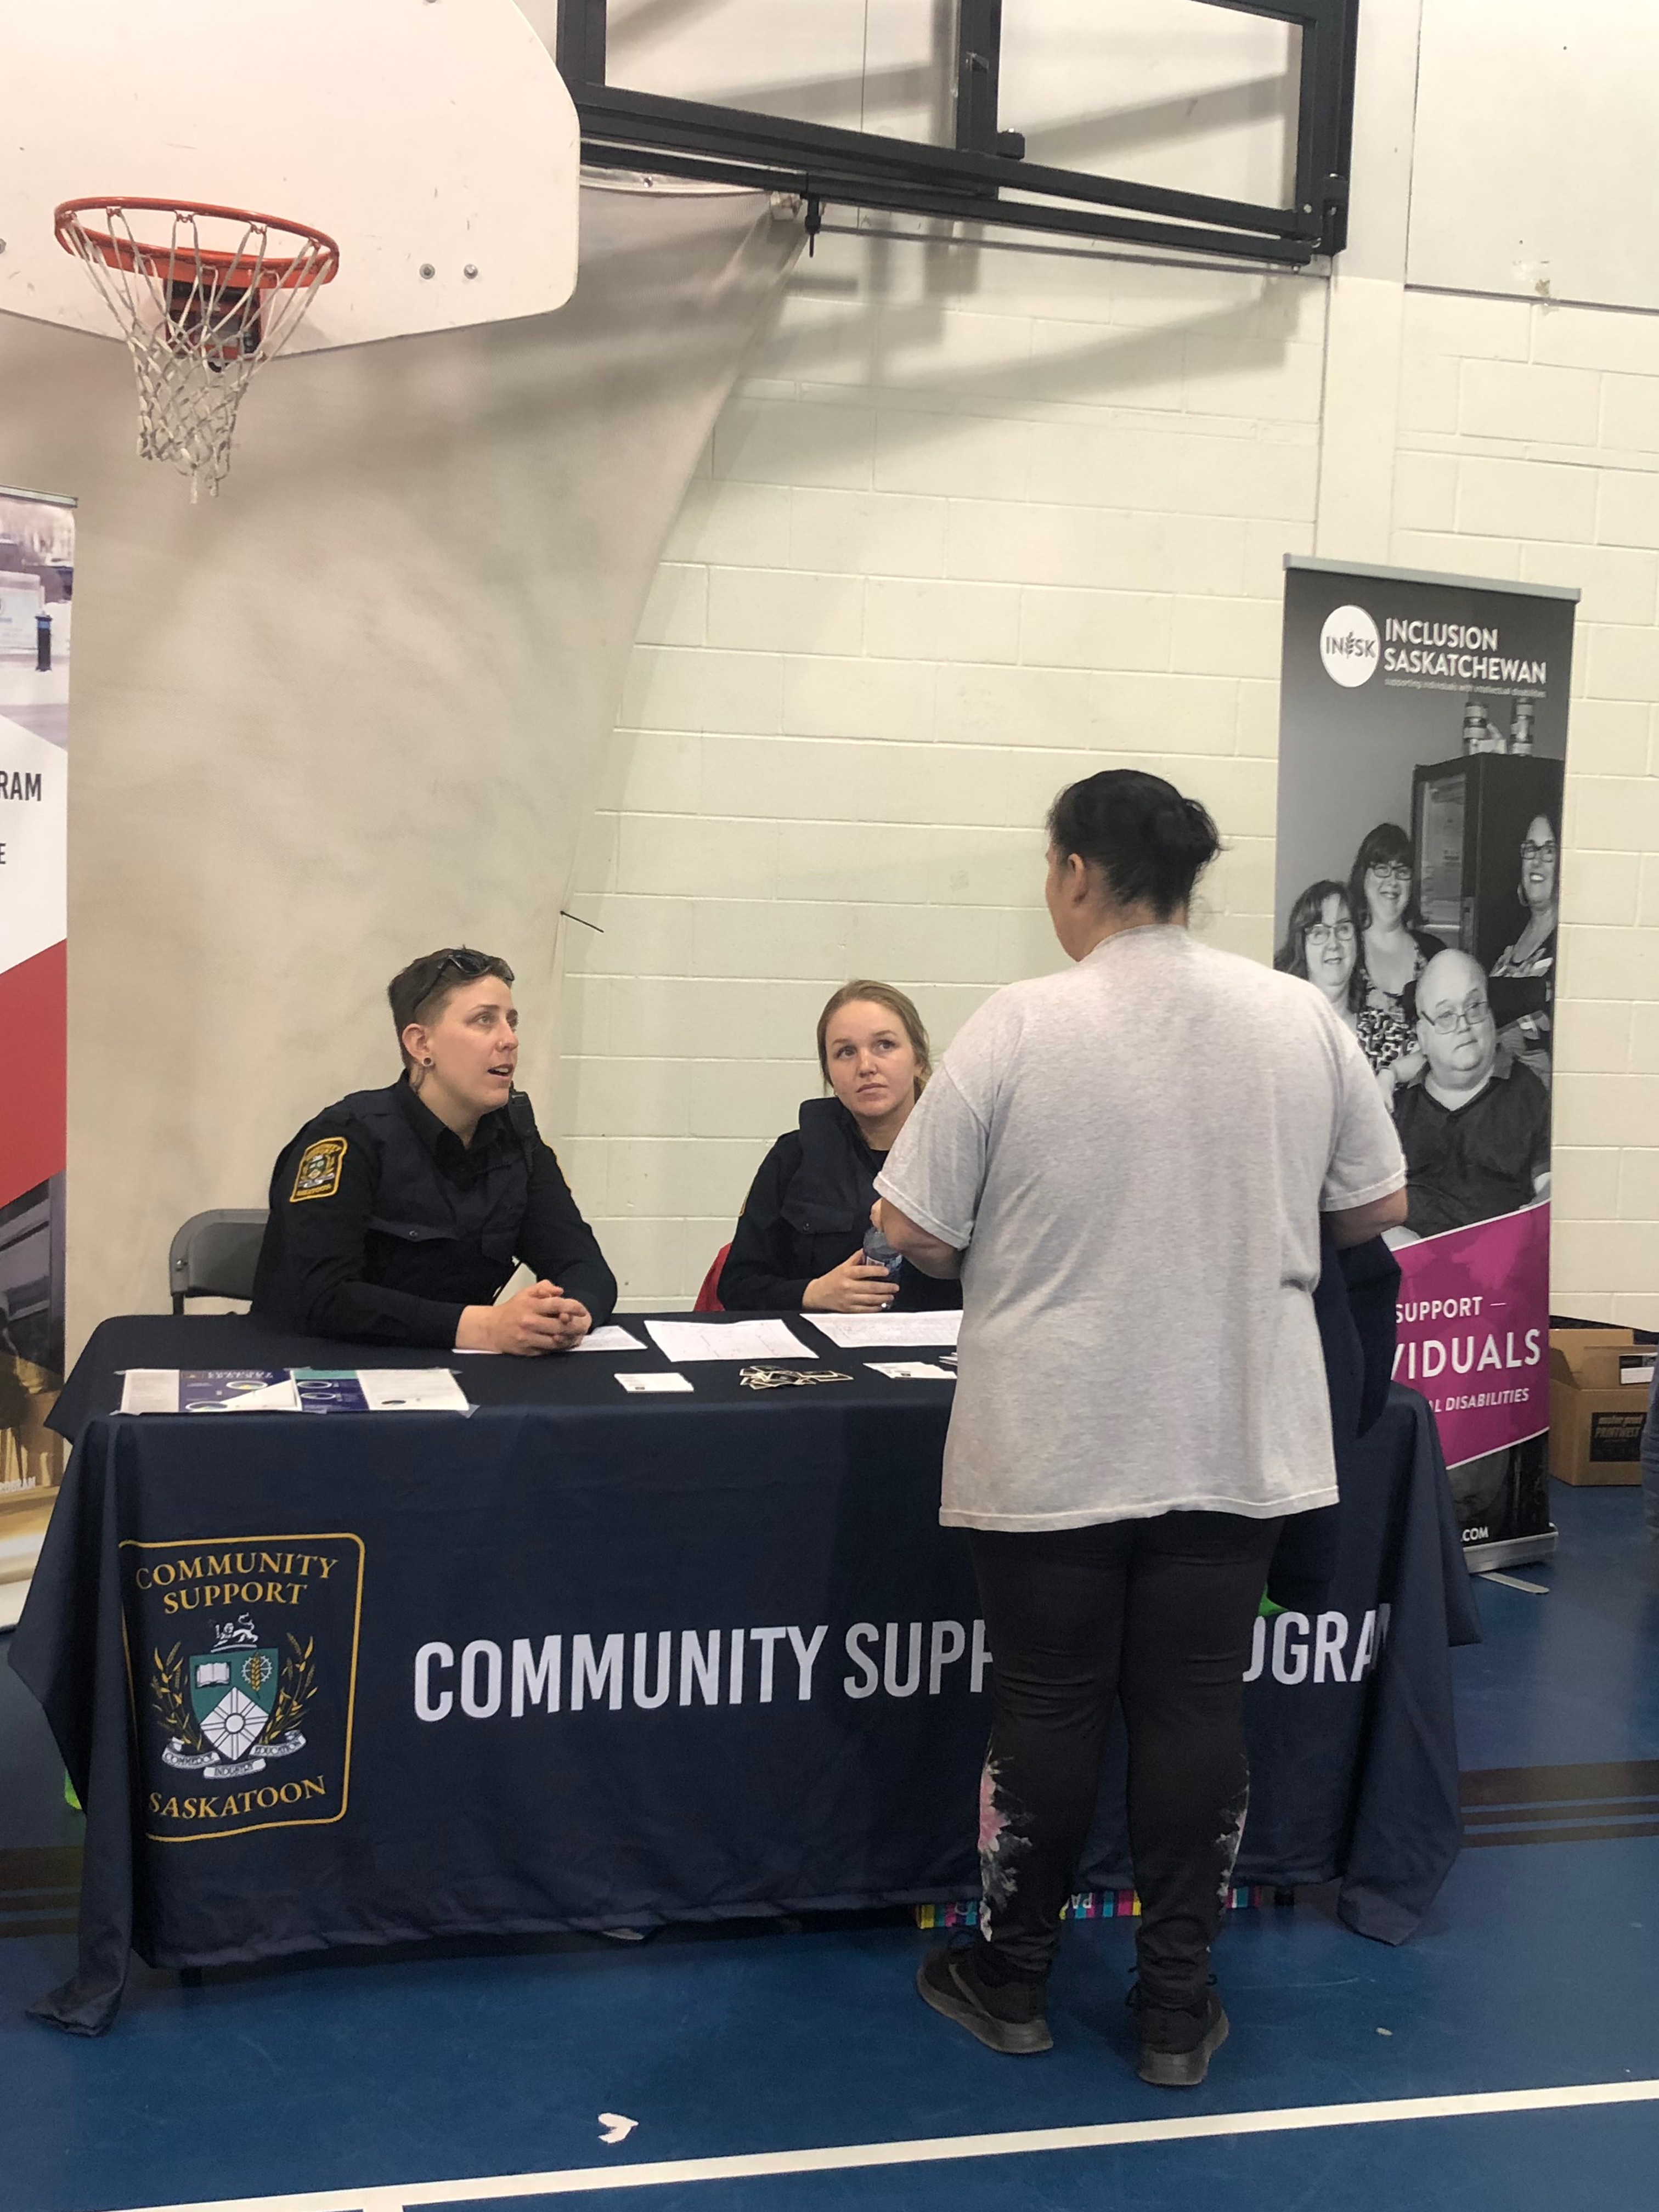 community support program, CSP, Saskatoon